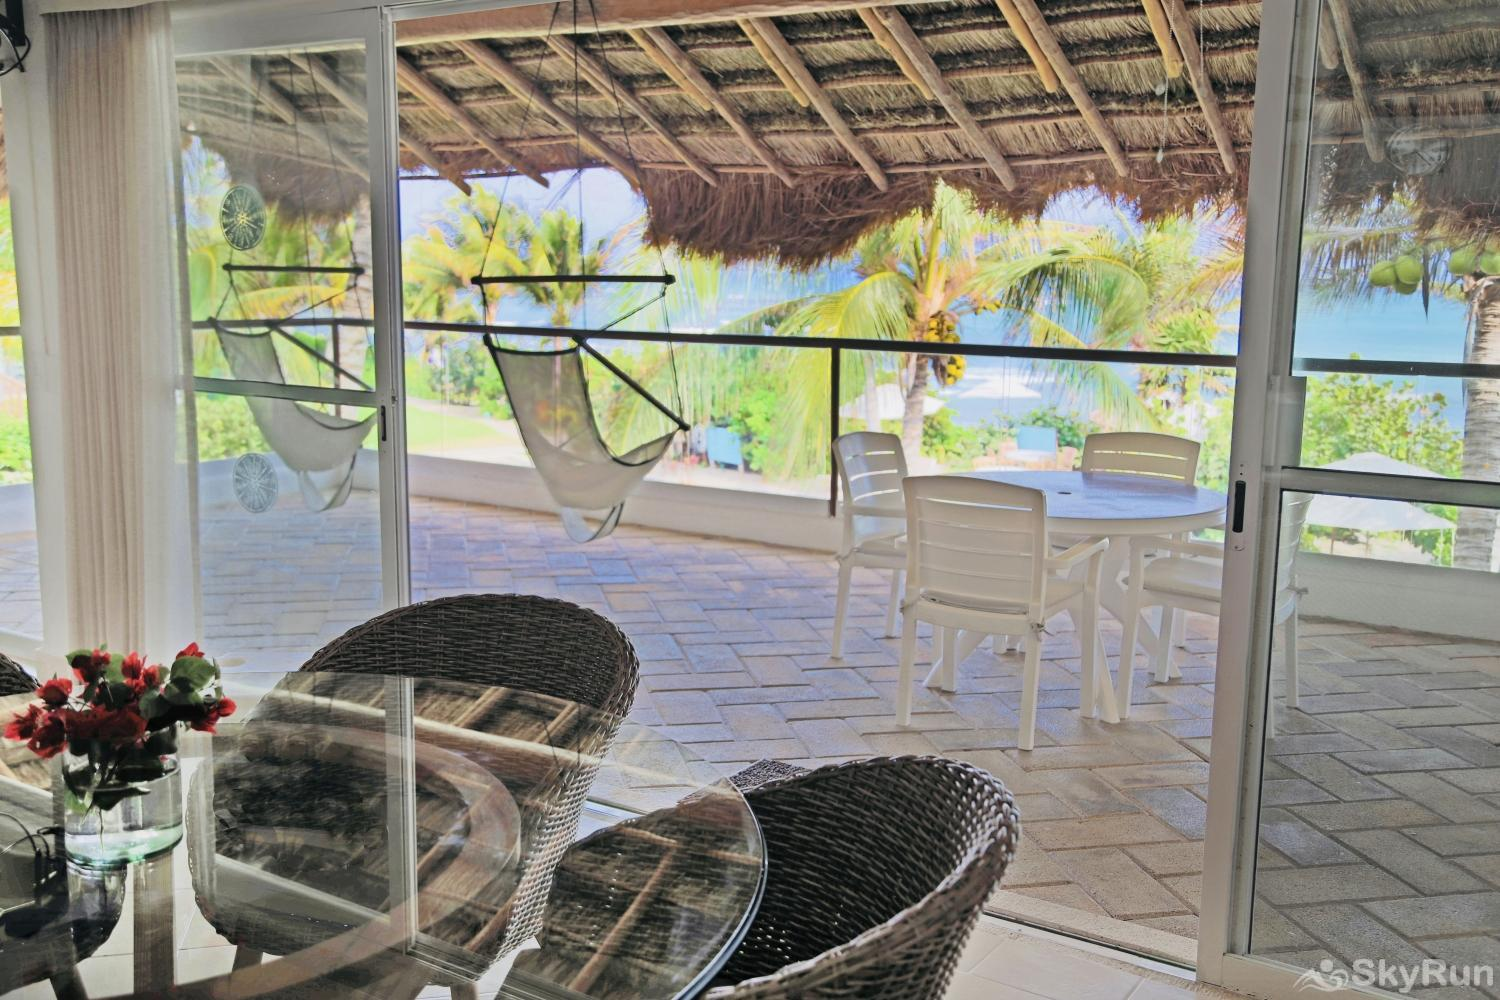 Beachfront Villa at Akumal Bay 210B 2bedroom 2nd floor Terrace 2nd Floor 2 bedroom Villa